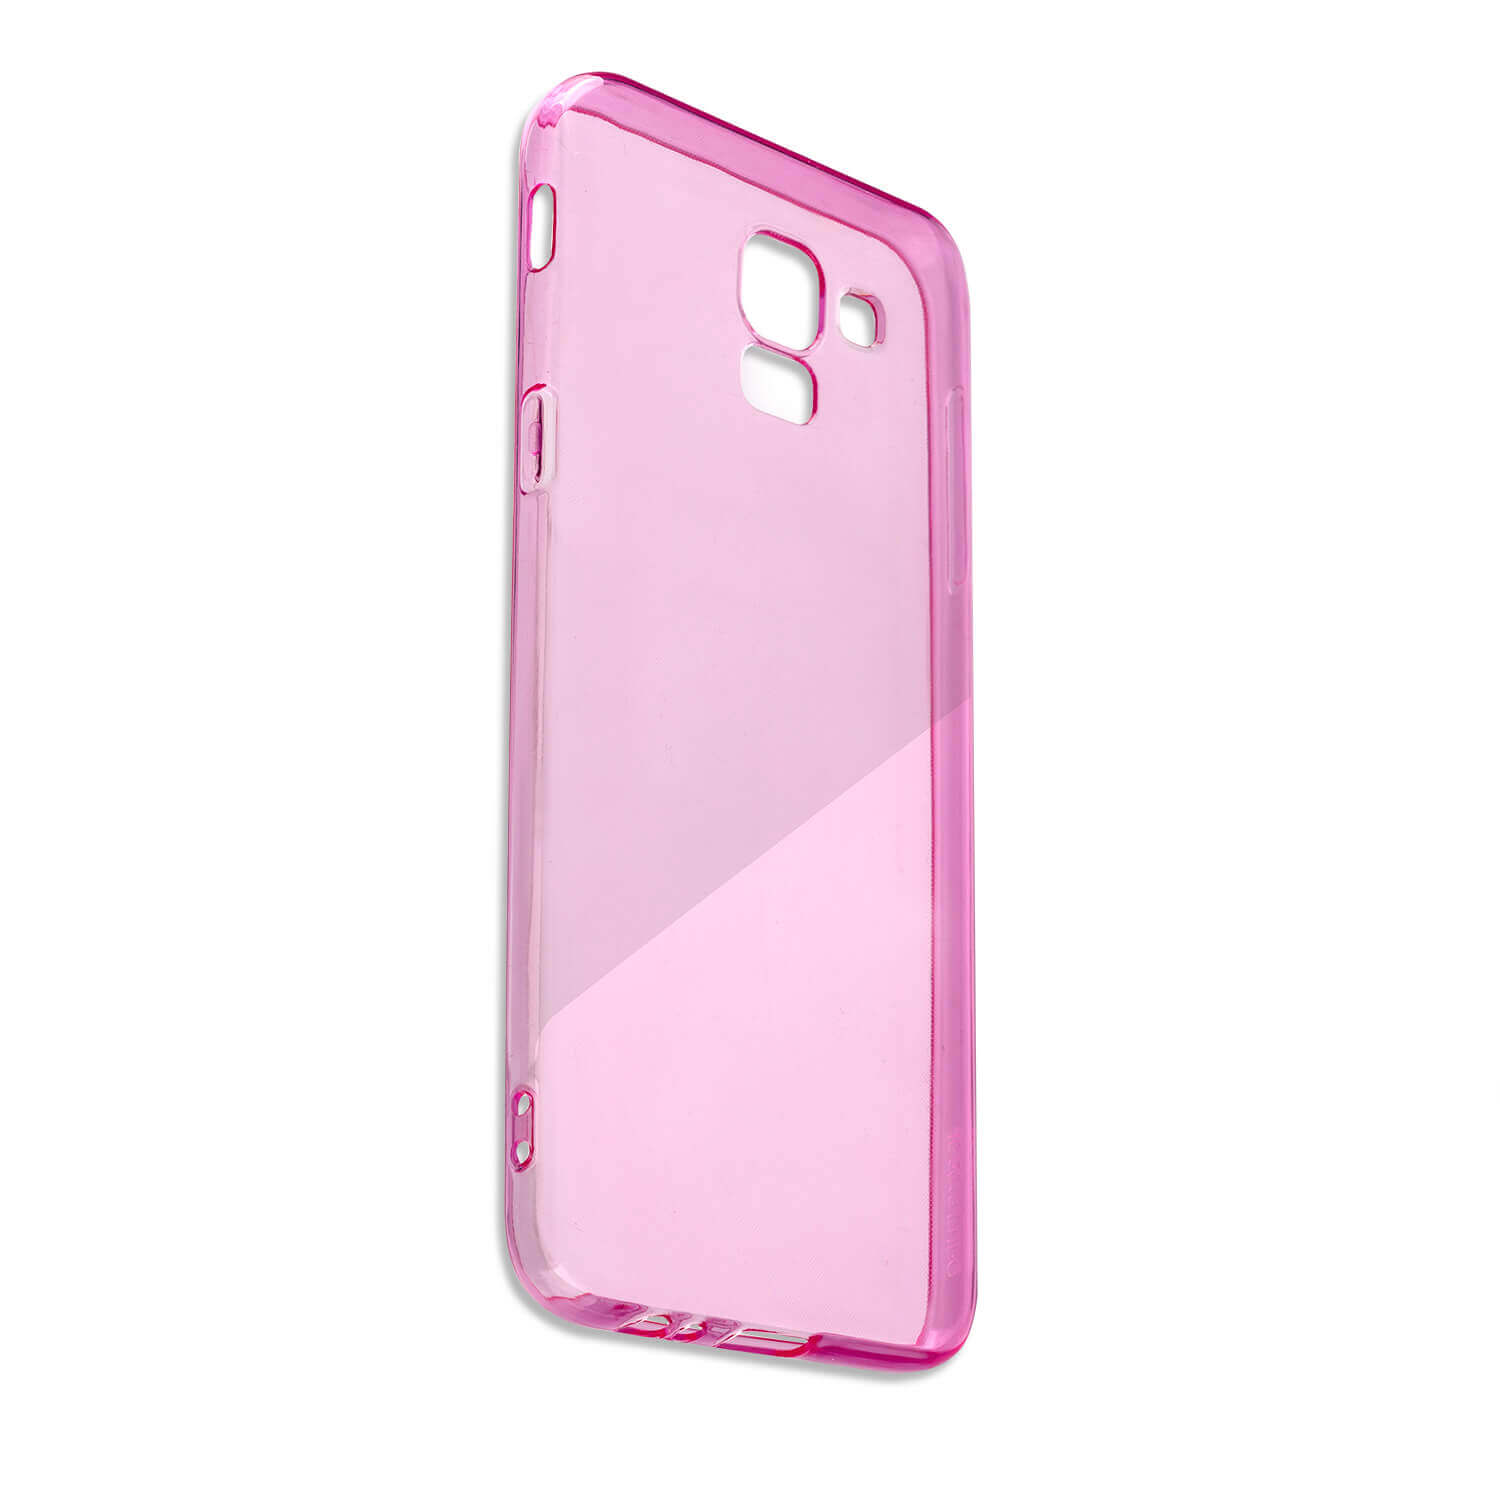 4smarts Soft Cover Invisible Slim — тънък силиконов кейс за Samsung Galaxy A50 (лилав) (bulk) - 5